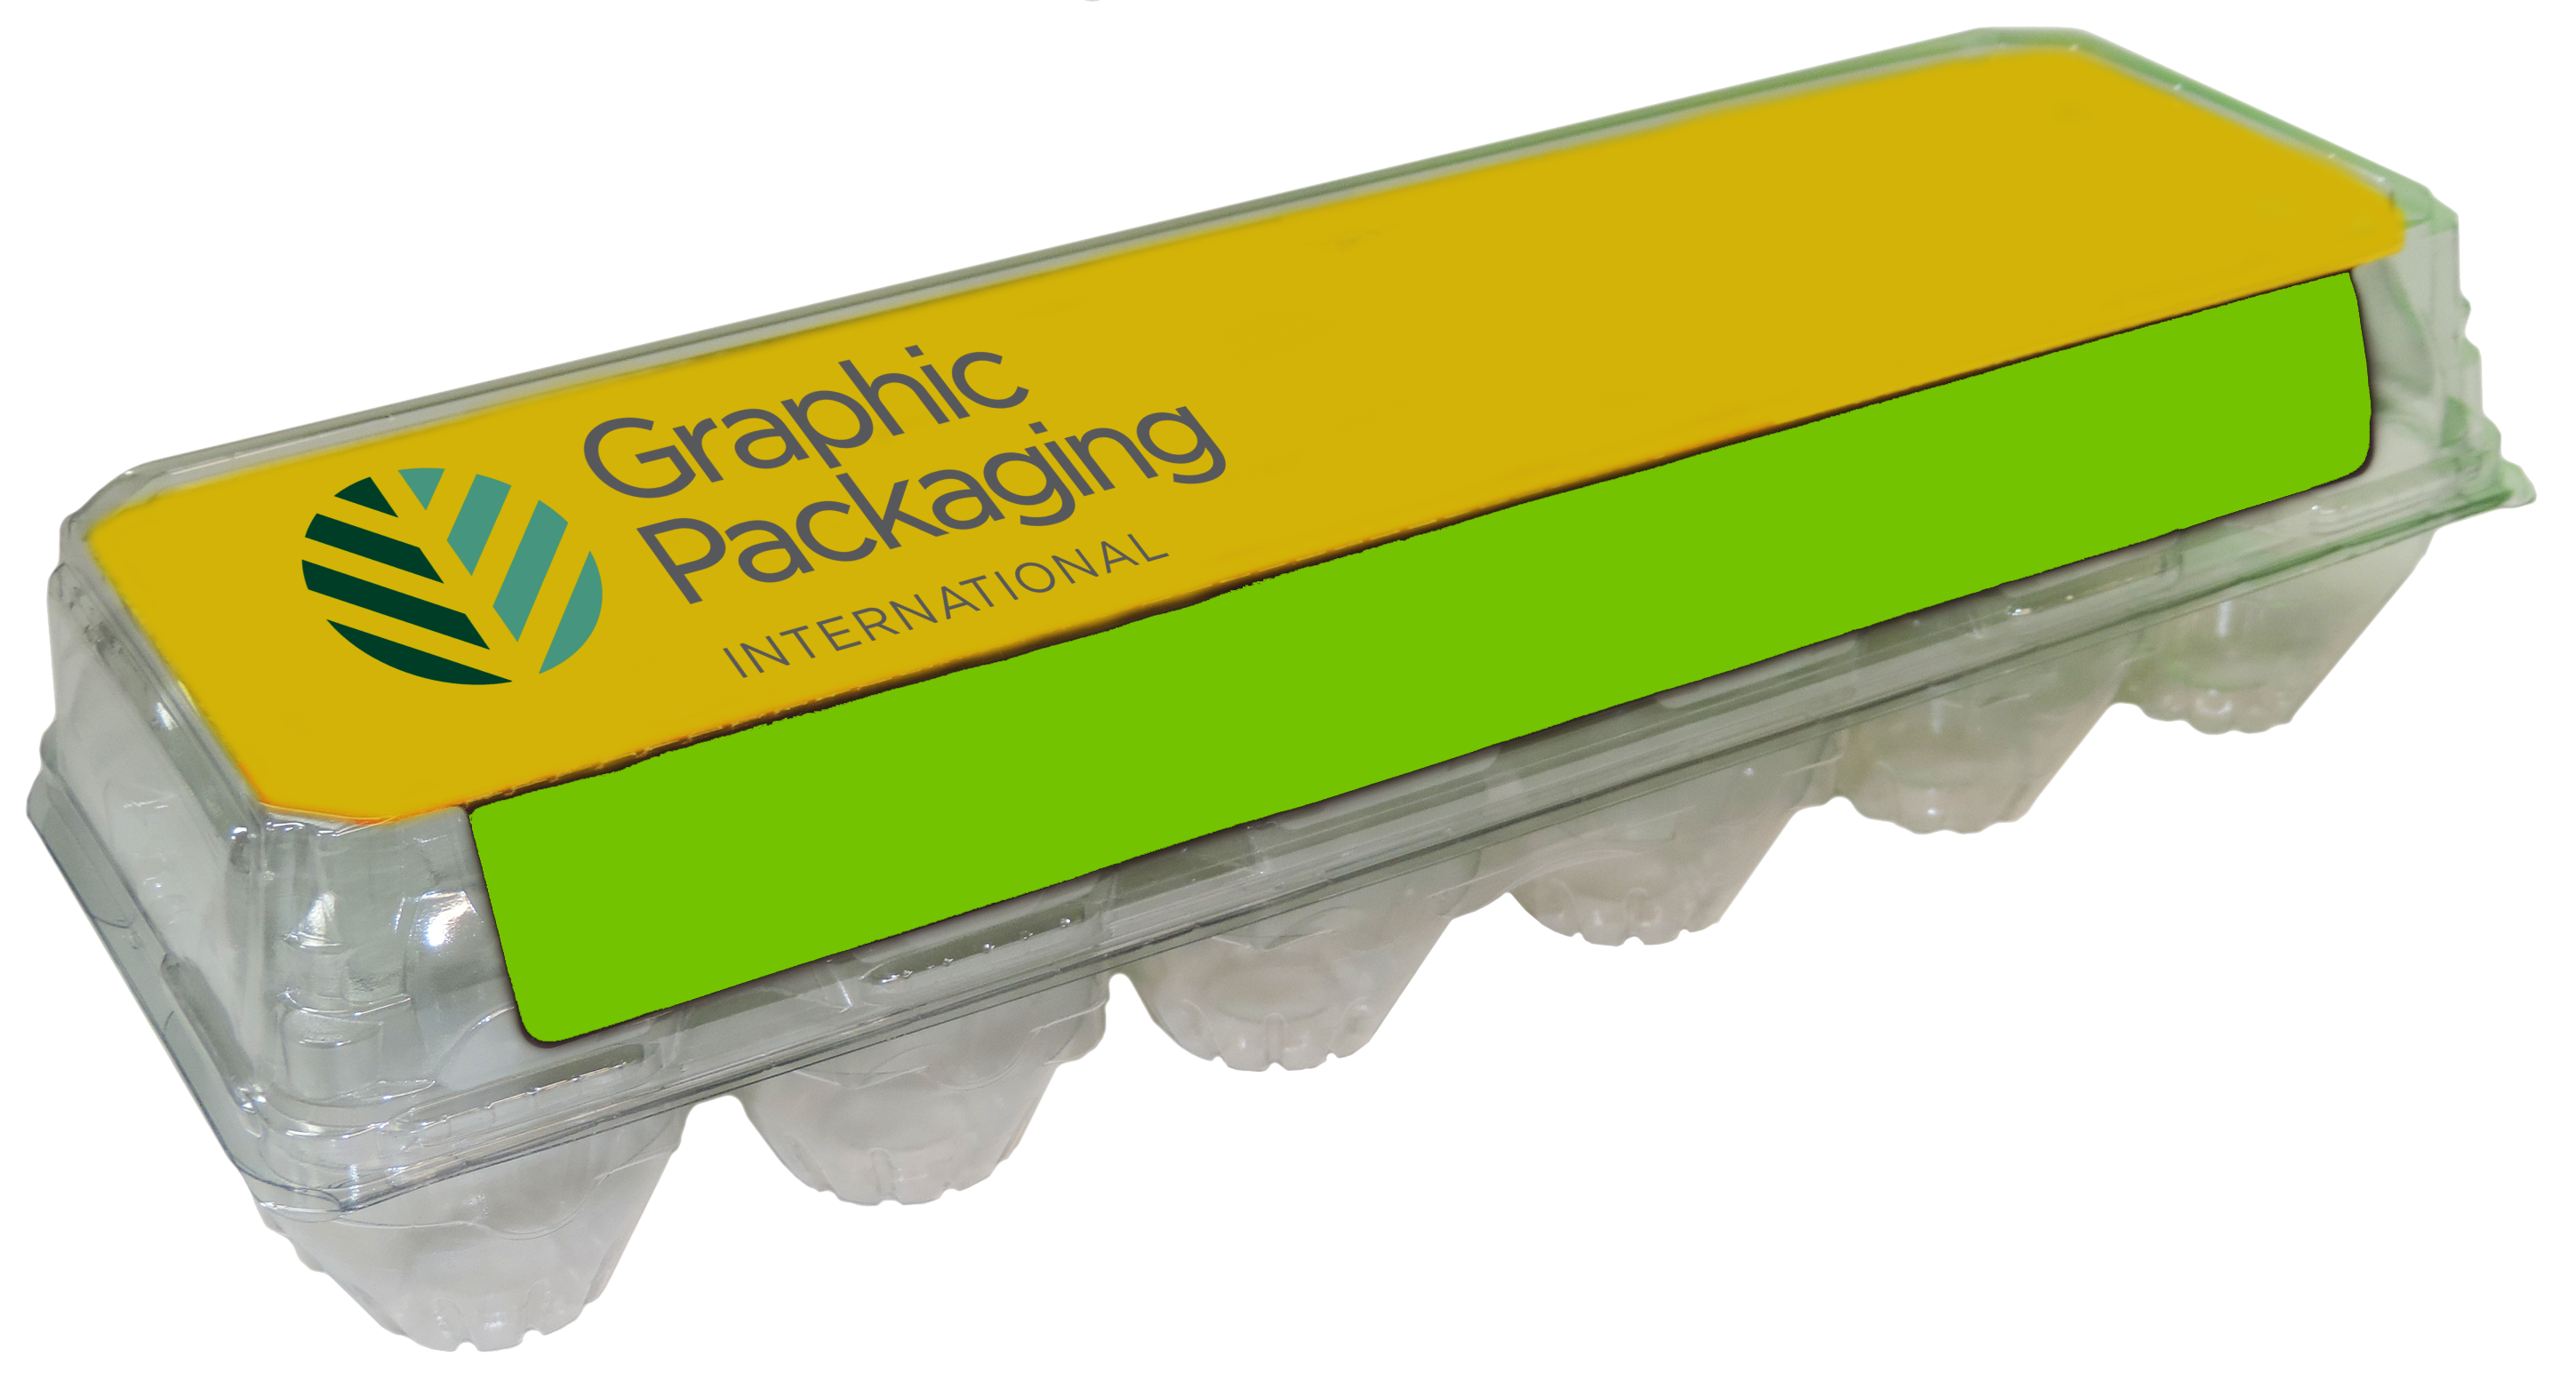 Emballage de carton d'œufs de Graphic Packaging International